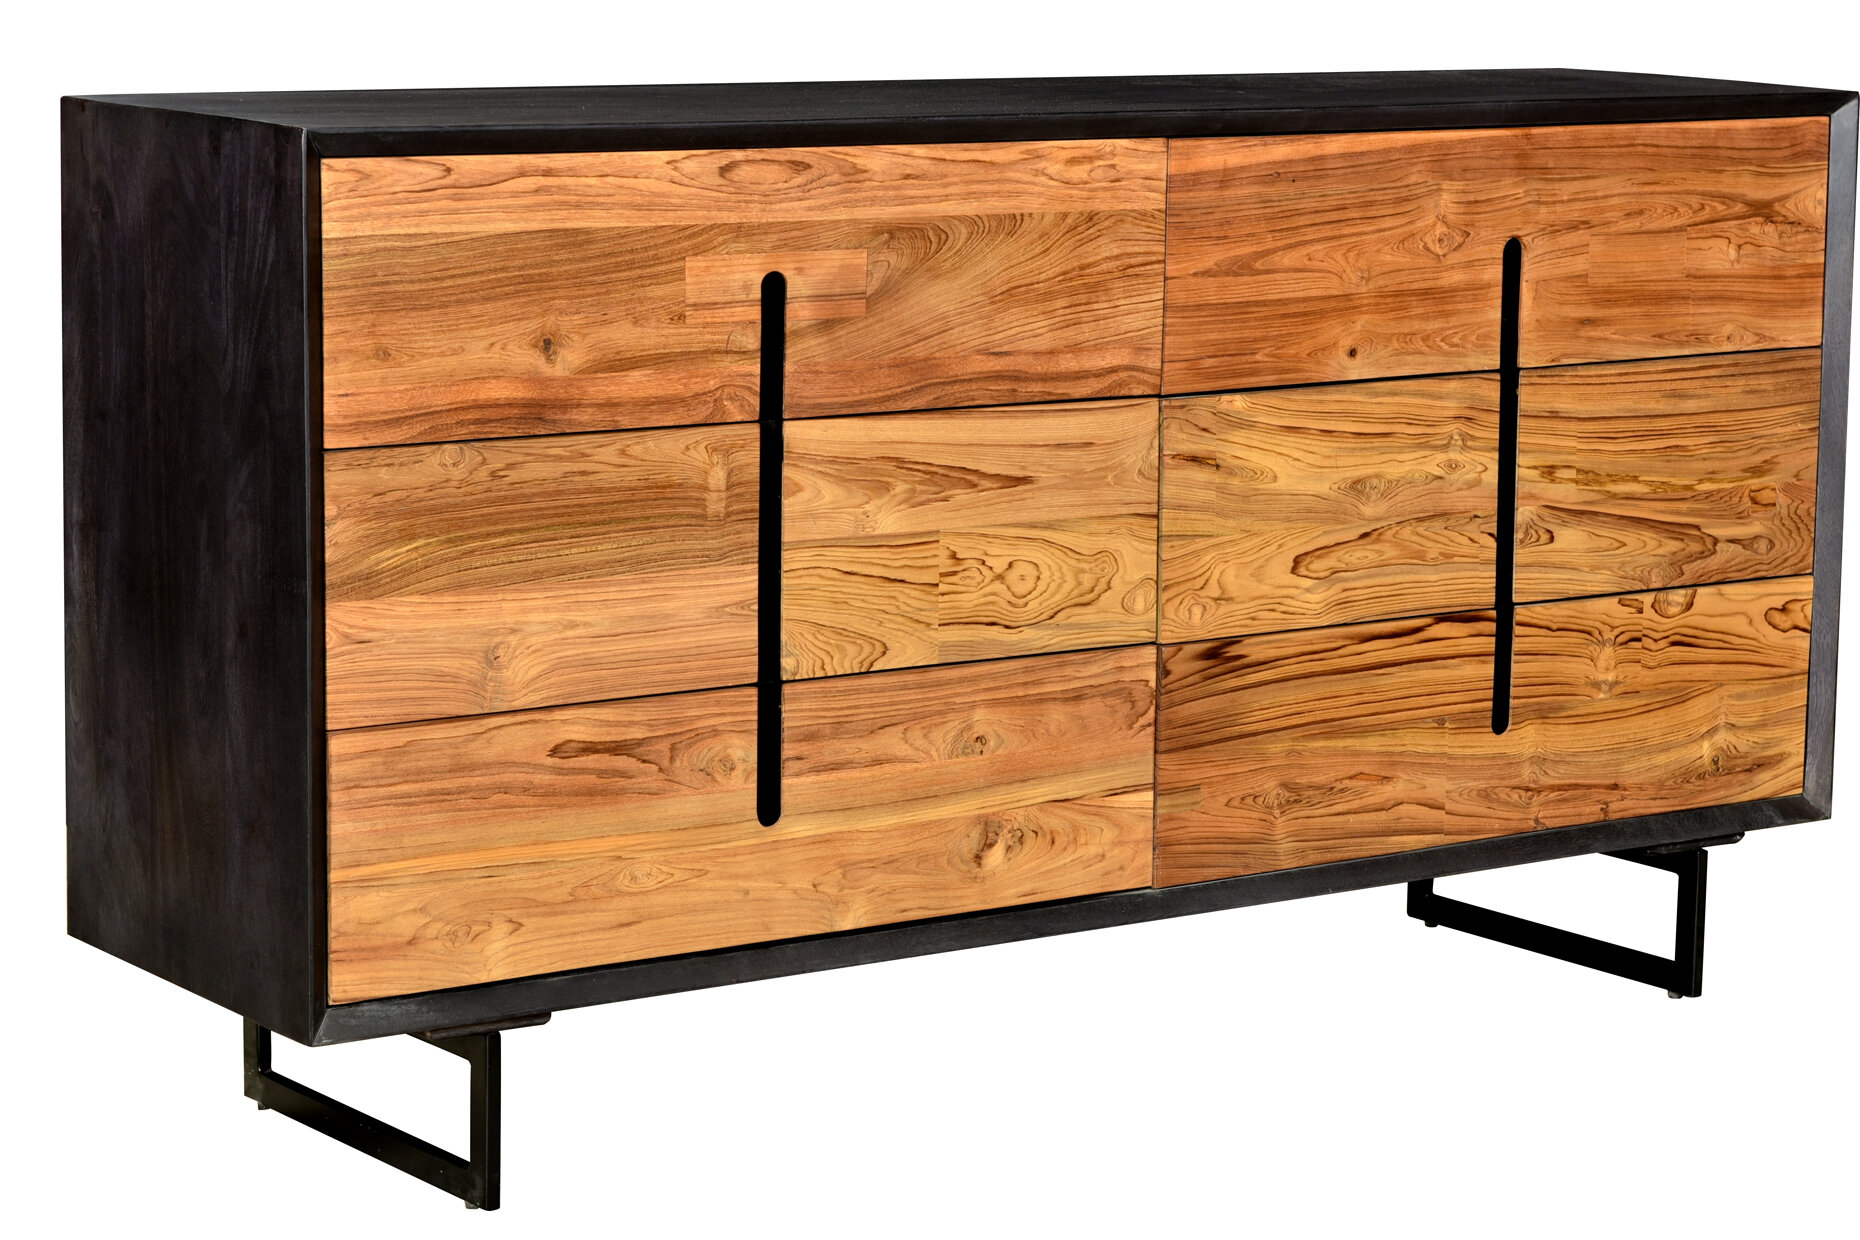 Solid Wood Teak Dressers Chests You Ll Love In 2021 Wayfair